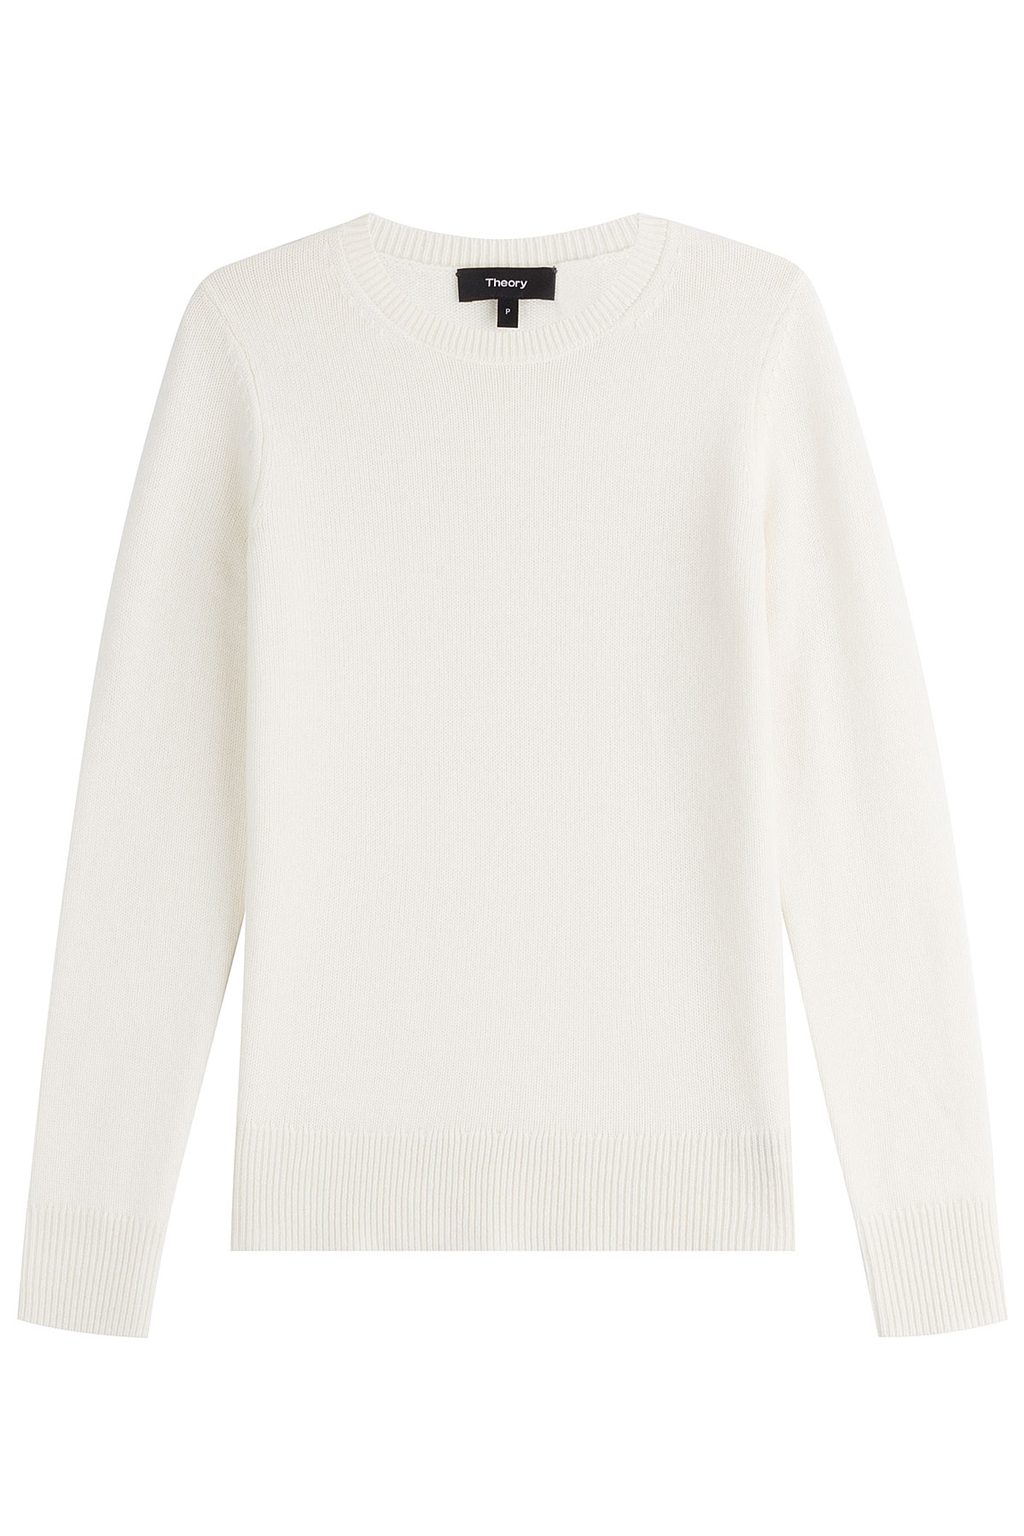 Cashmere Pullover - pattern: plain; style: standard; predominant colour: white; occasions: casual; length: standard; fit: slim fit; neckline: crew; fibres: cashmere - 100%; sleeve length: long sleeve; sleeve style: standard; texture group: knits/crochet; pattern type: knitted - other; wardrobe: investment; season: a/w 2016